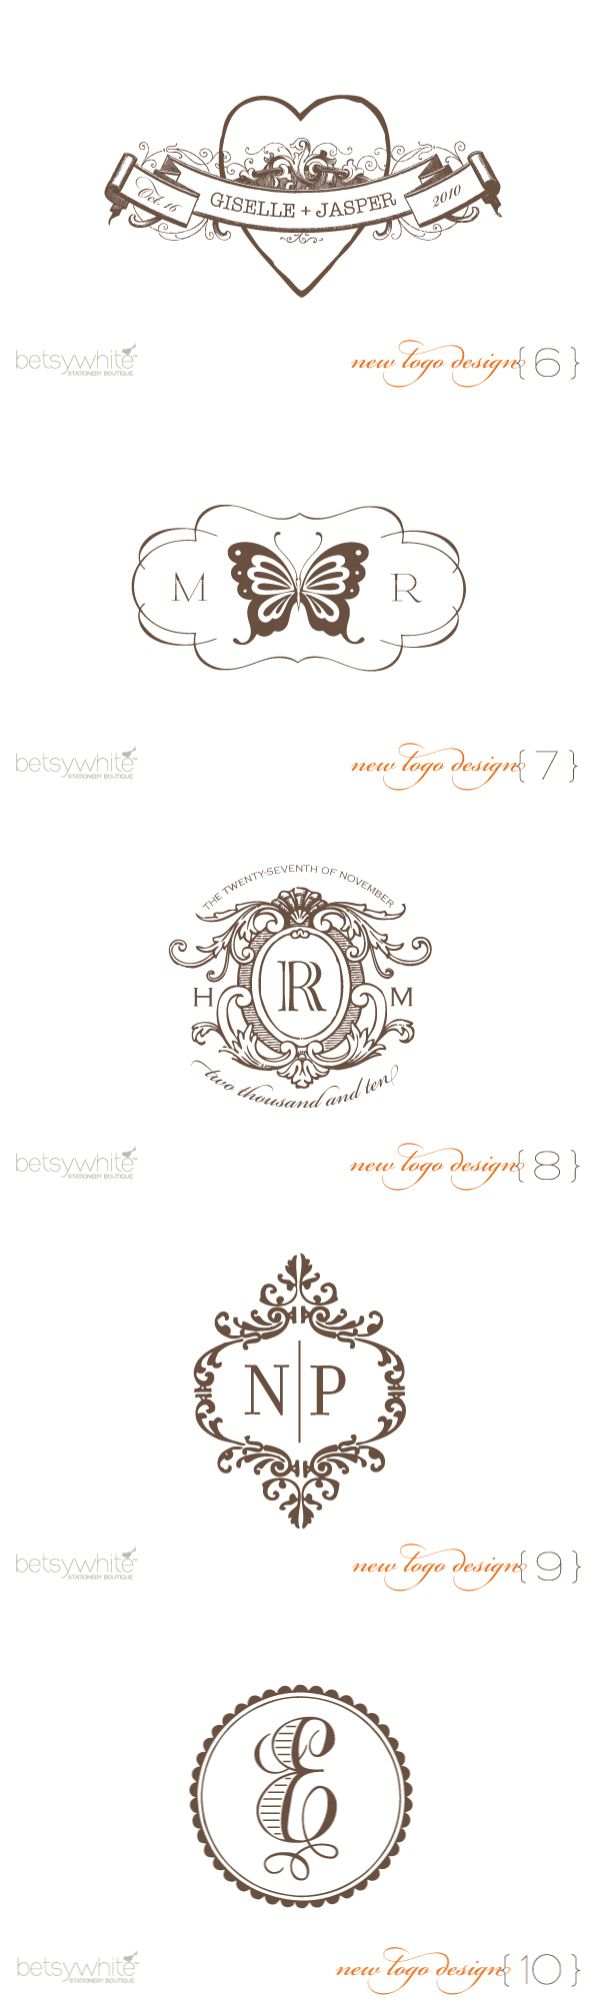 Wedding Logo Giveaway From Betsywhite Stationery Boutique! | Style Me Pretty